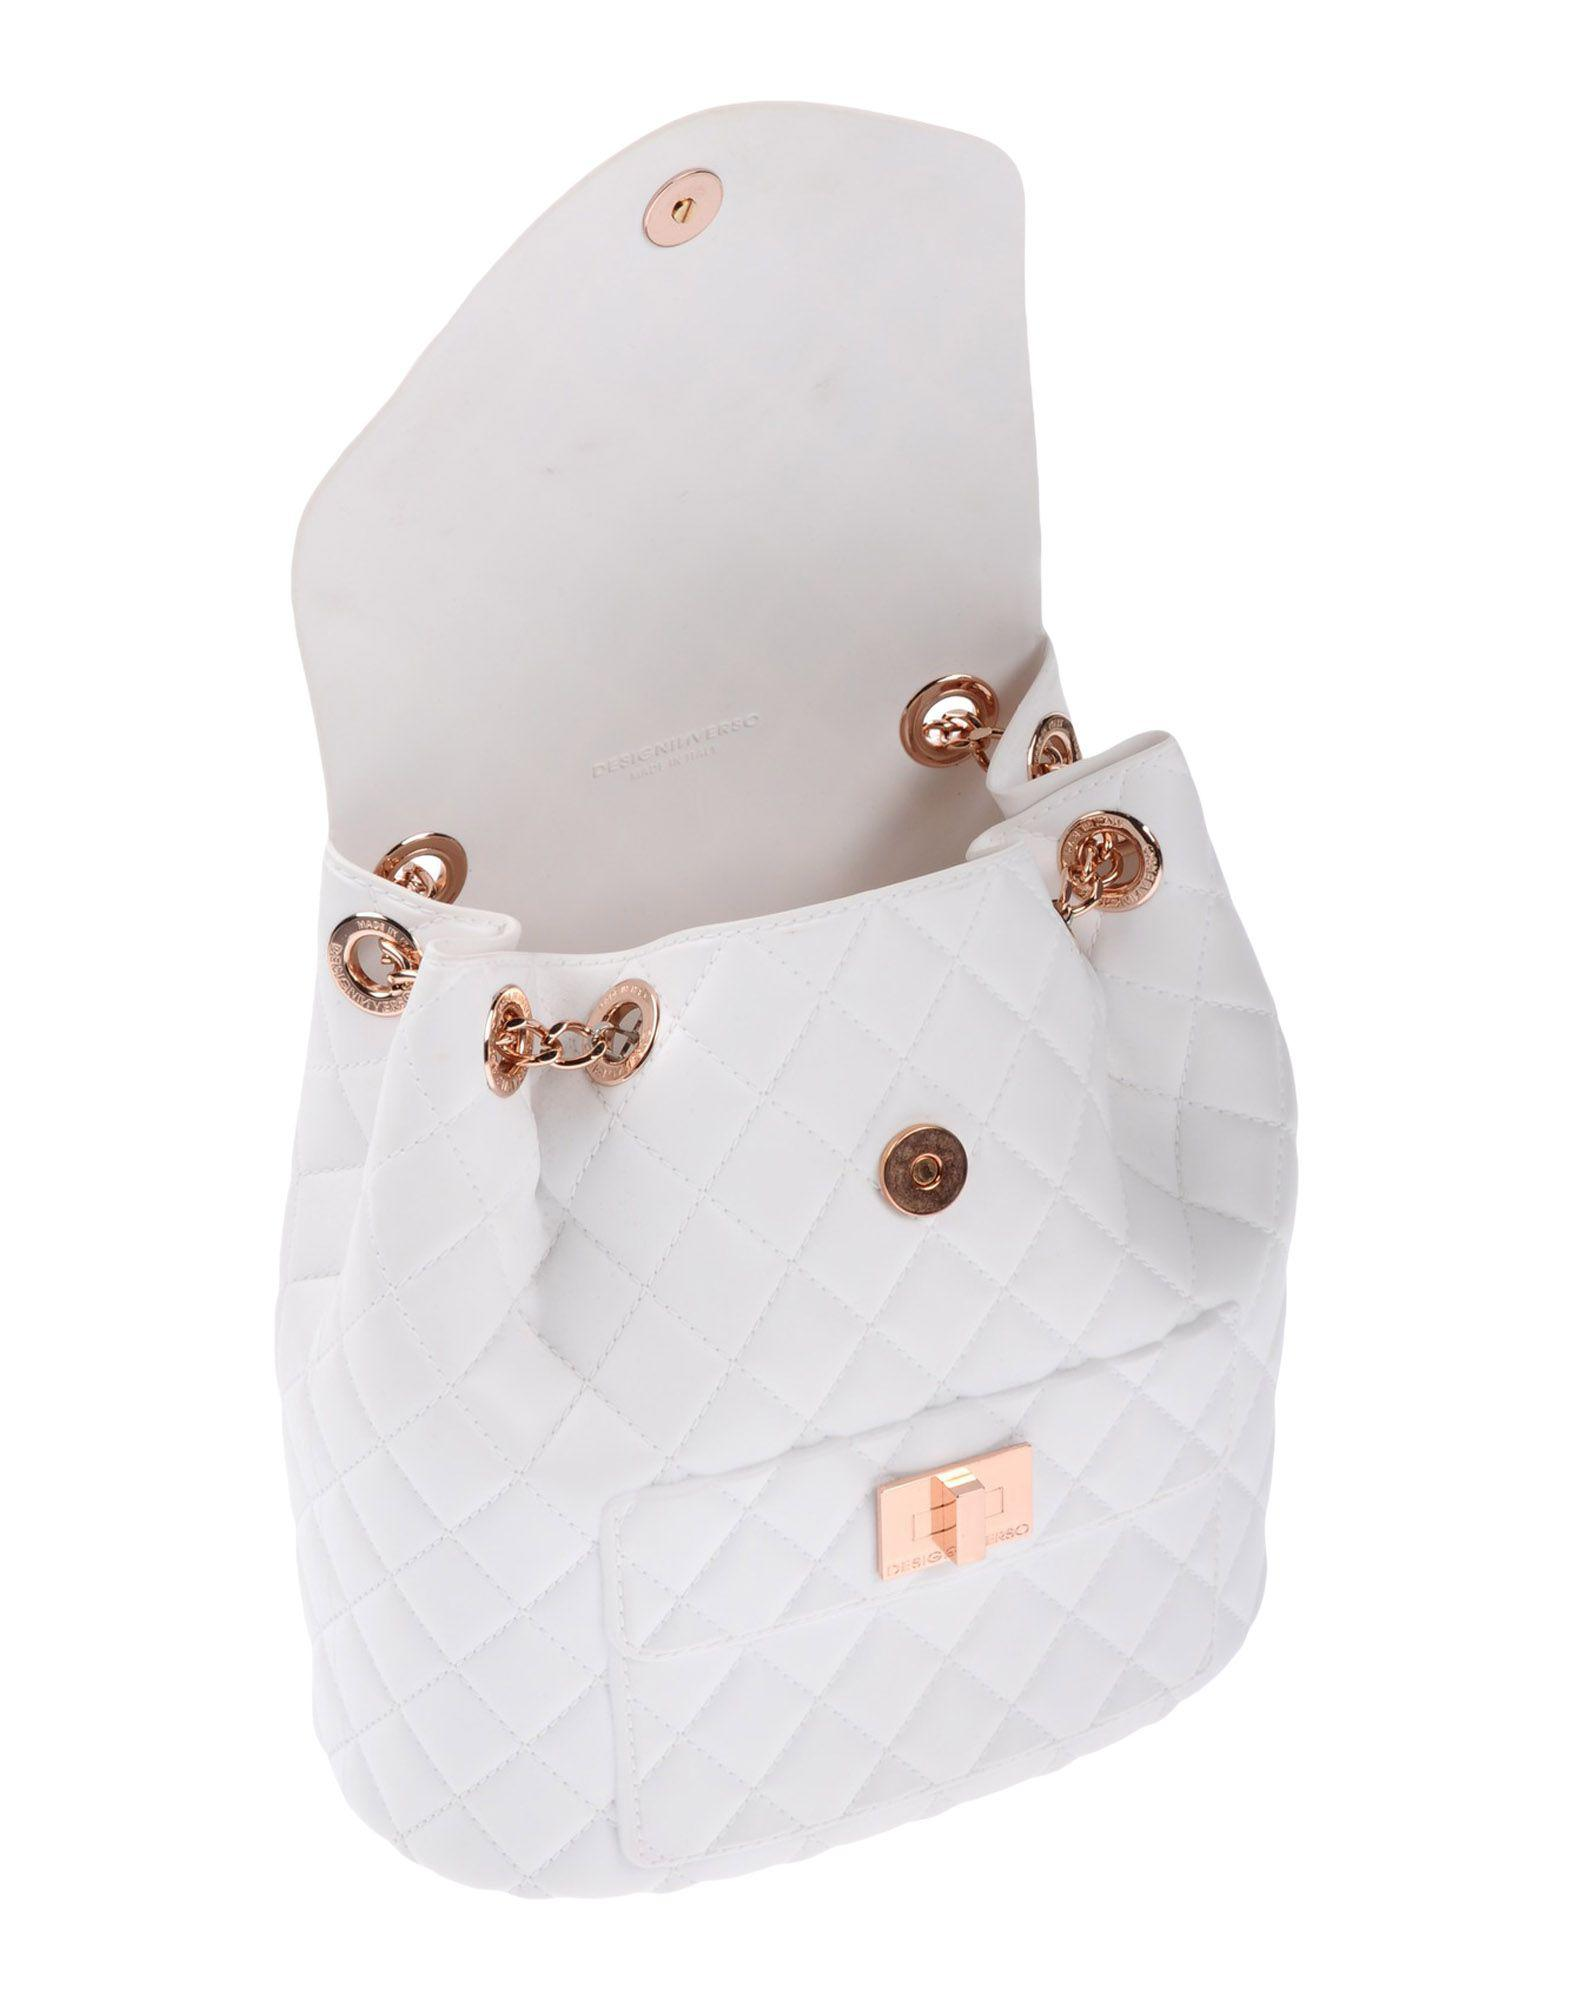 Designinverso Backpacks & Bum Bags in White